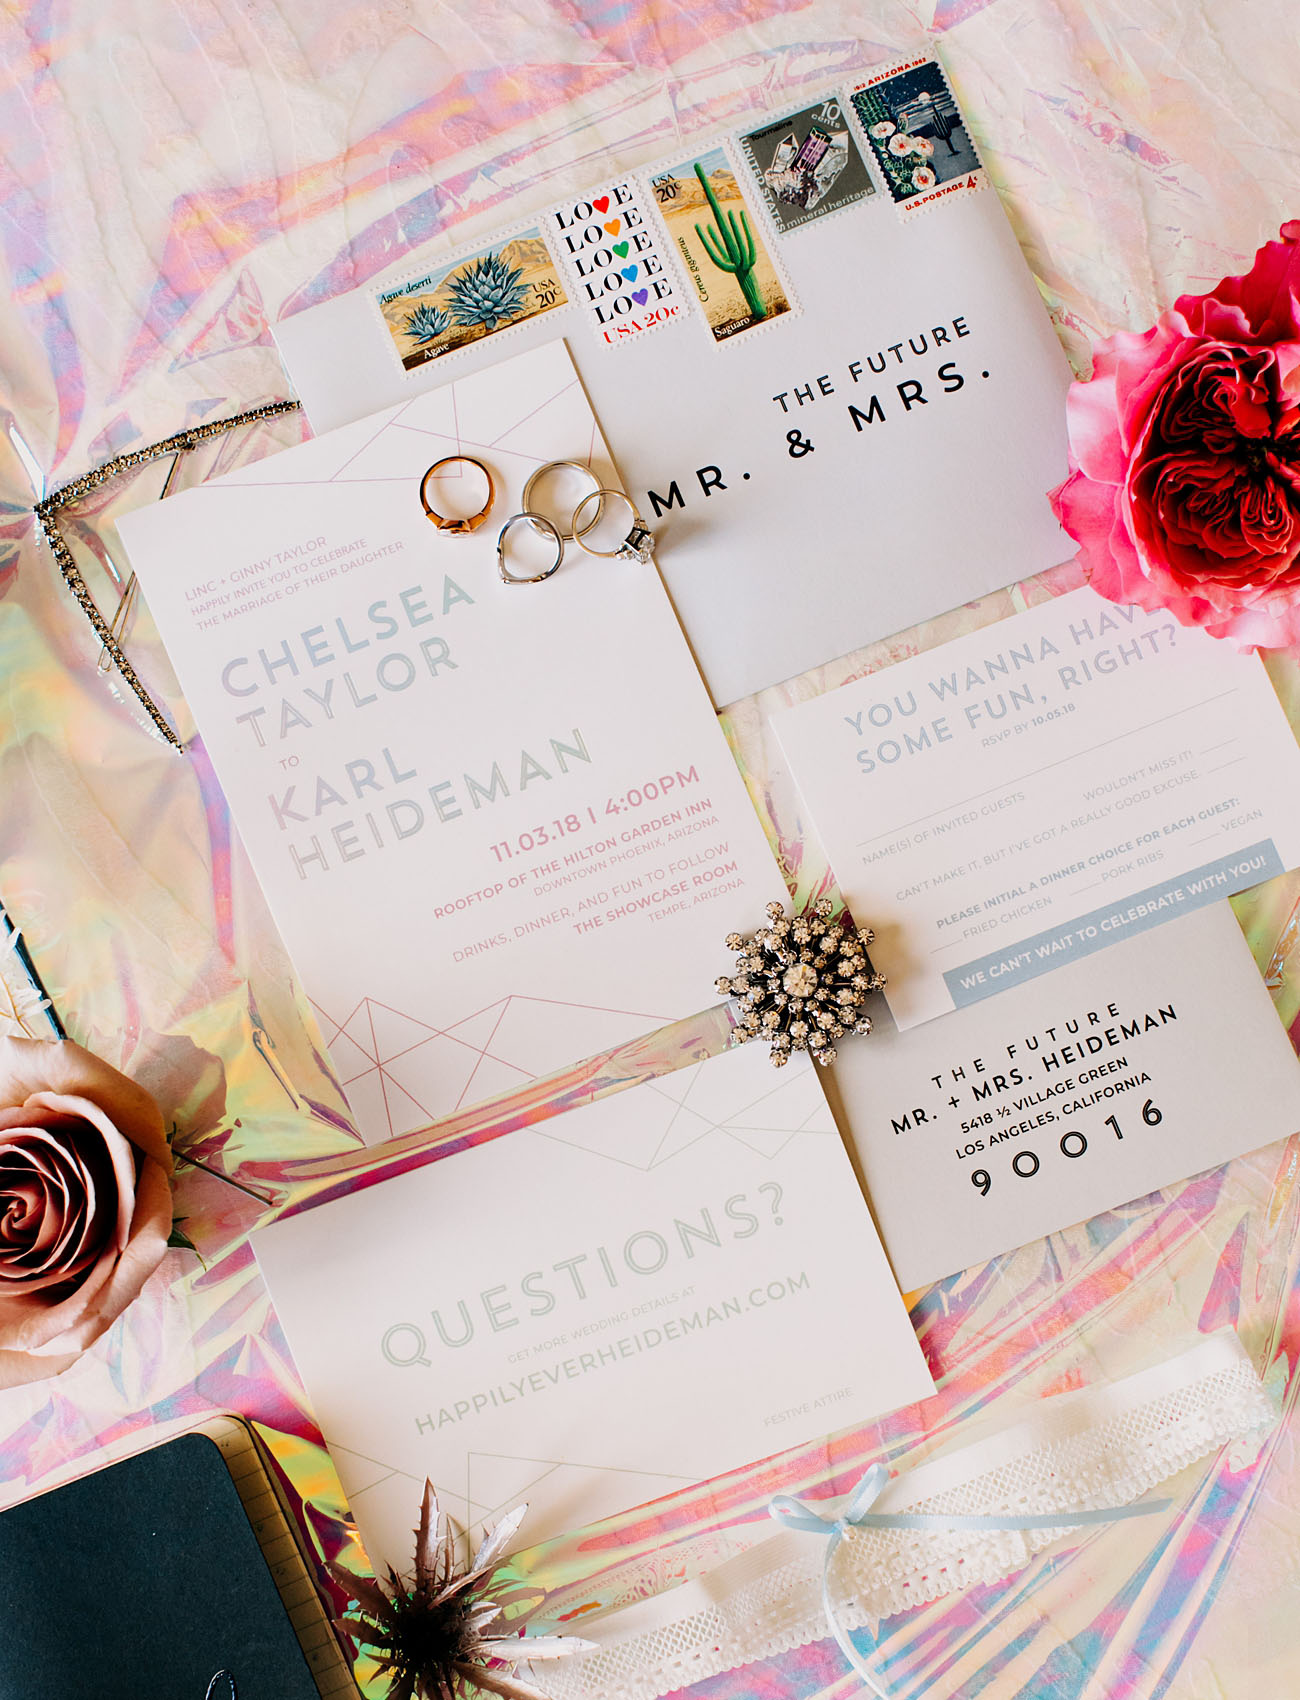 The geometric wedding stationery hinted on touches of mid century modern and bright colors